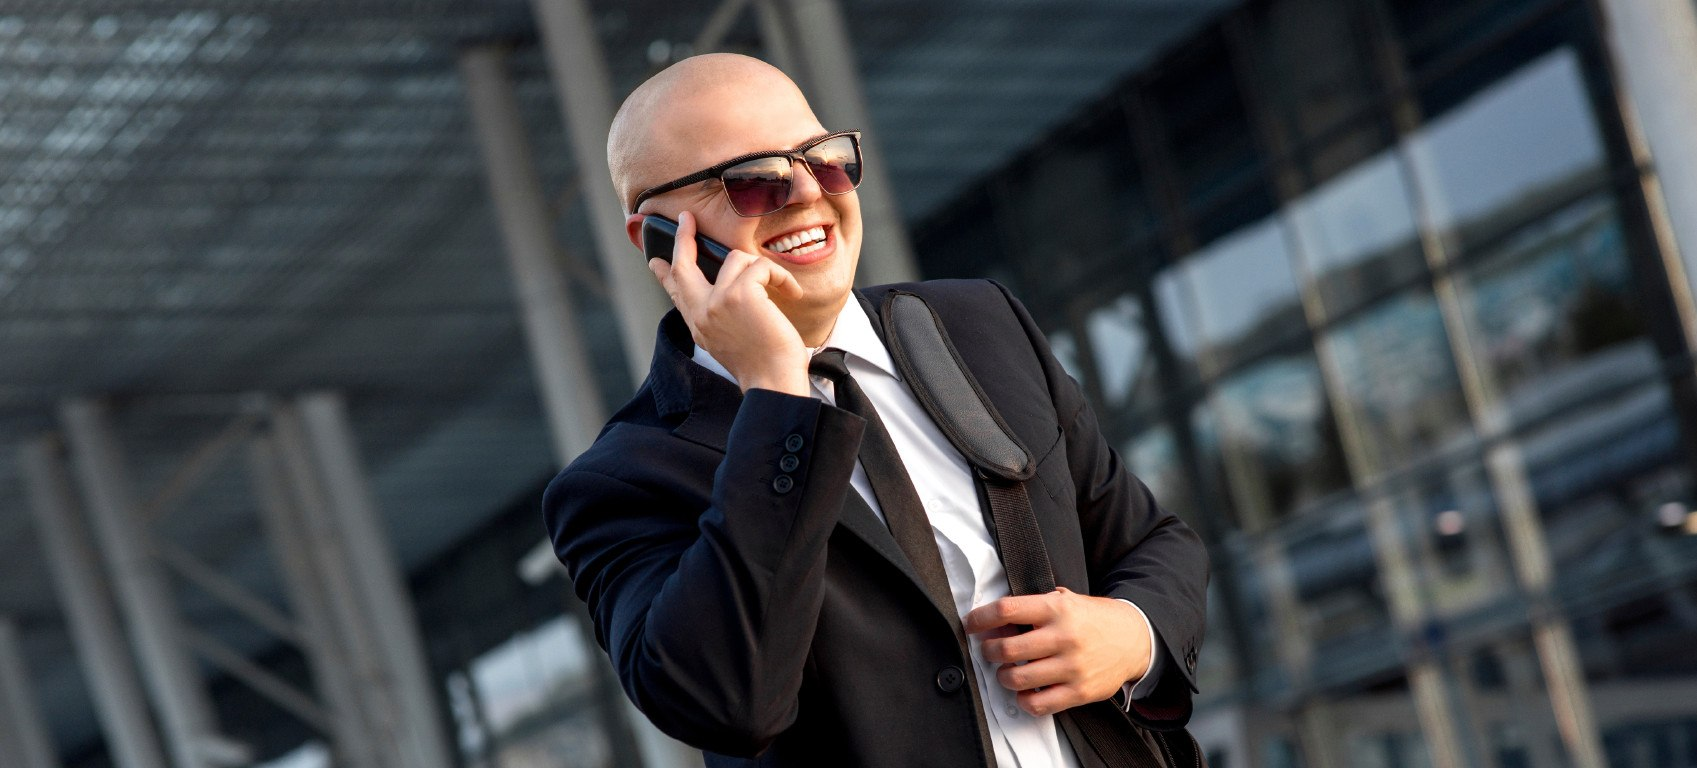 Businessman or banker speaking phone outside the airport or contemporary building